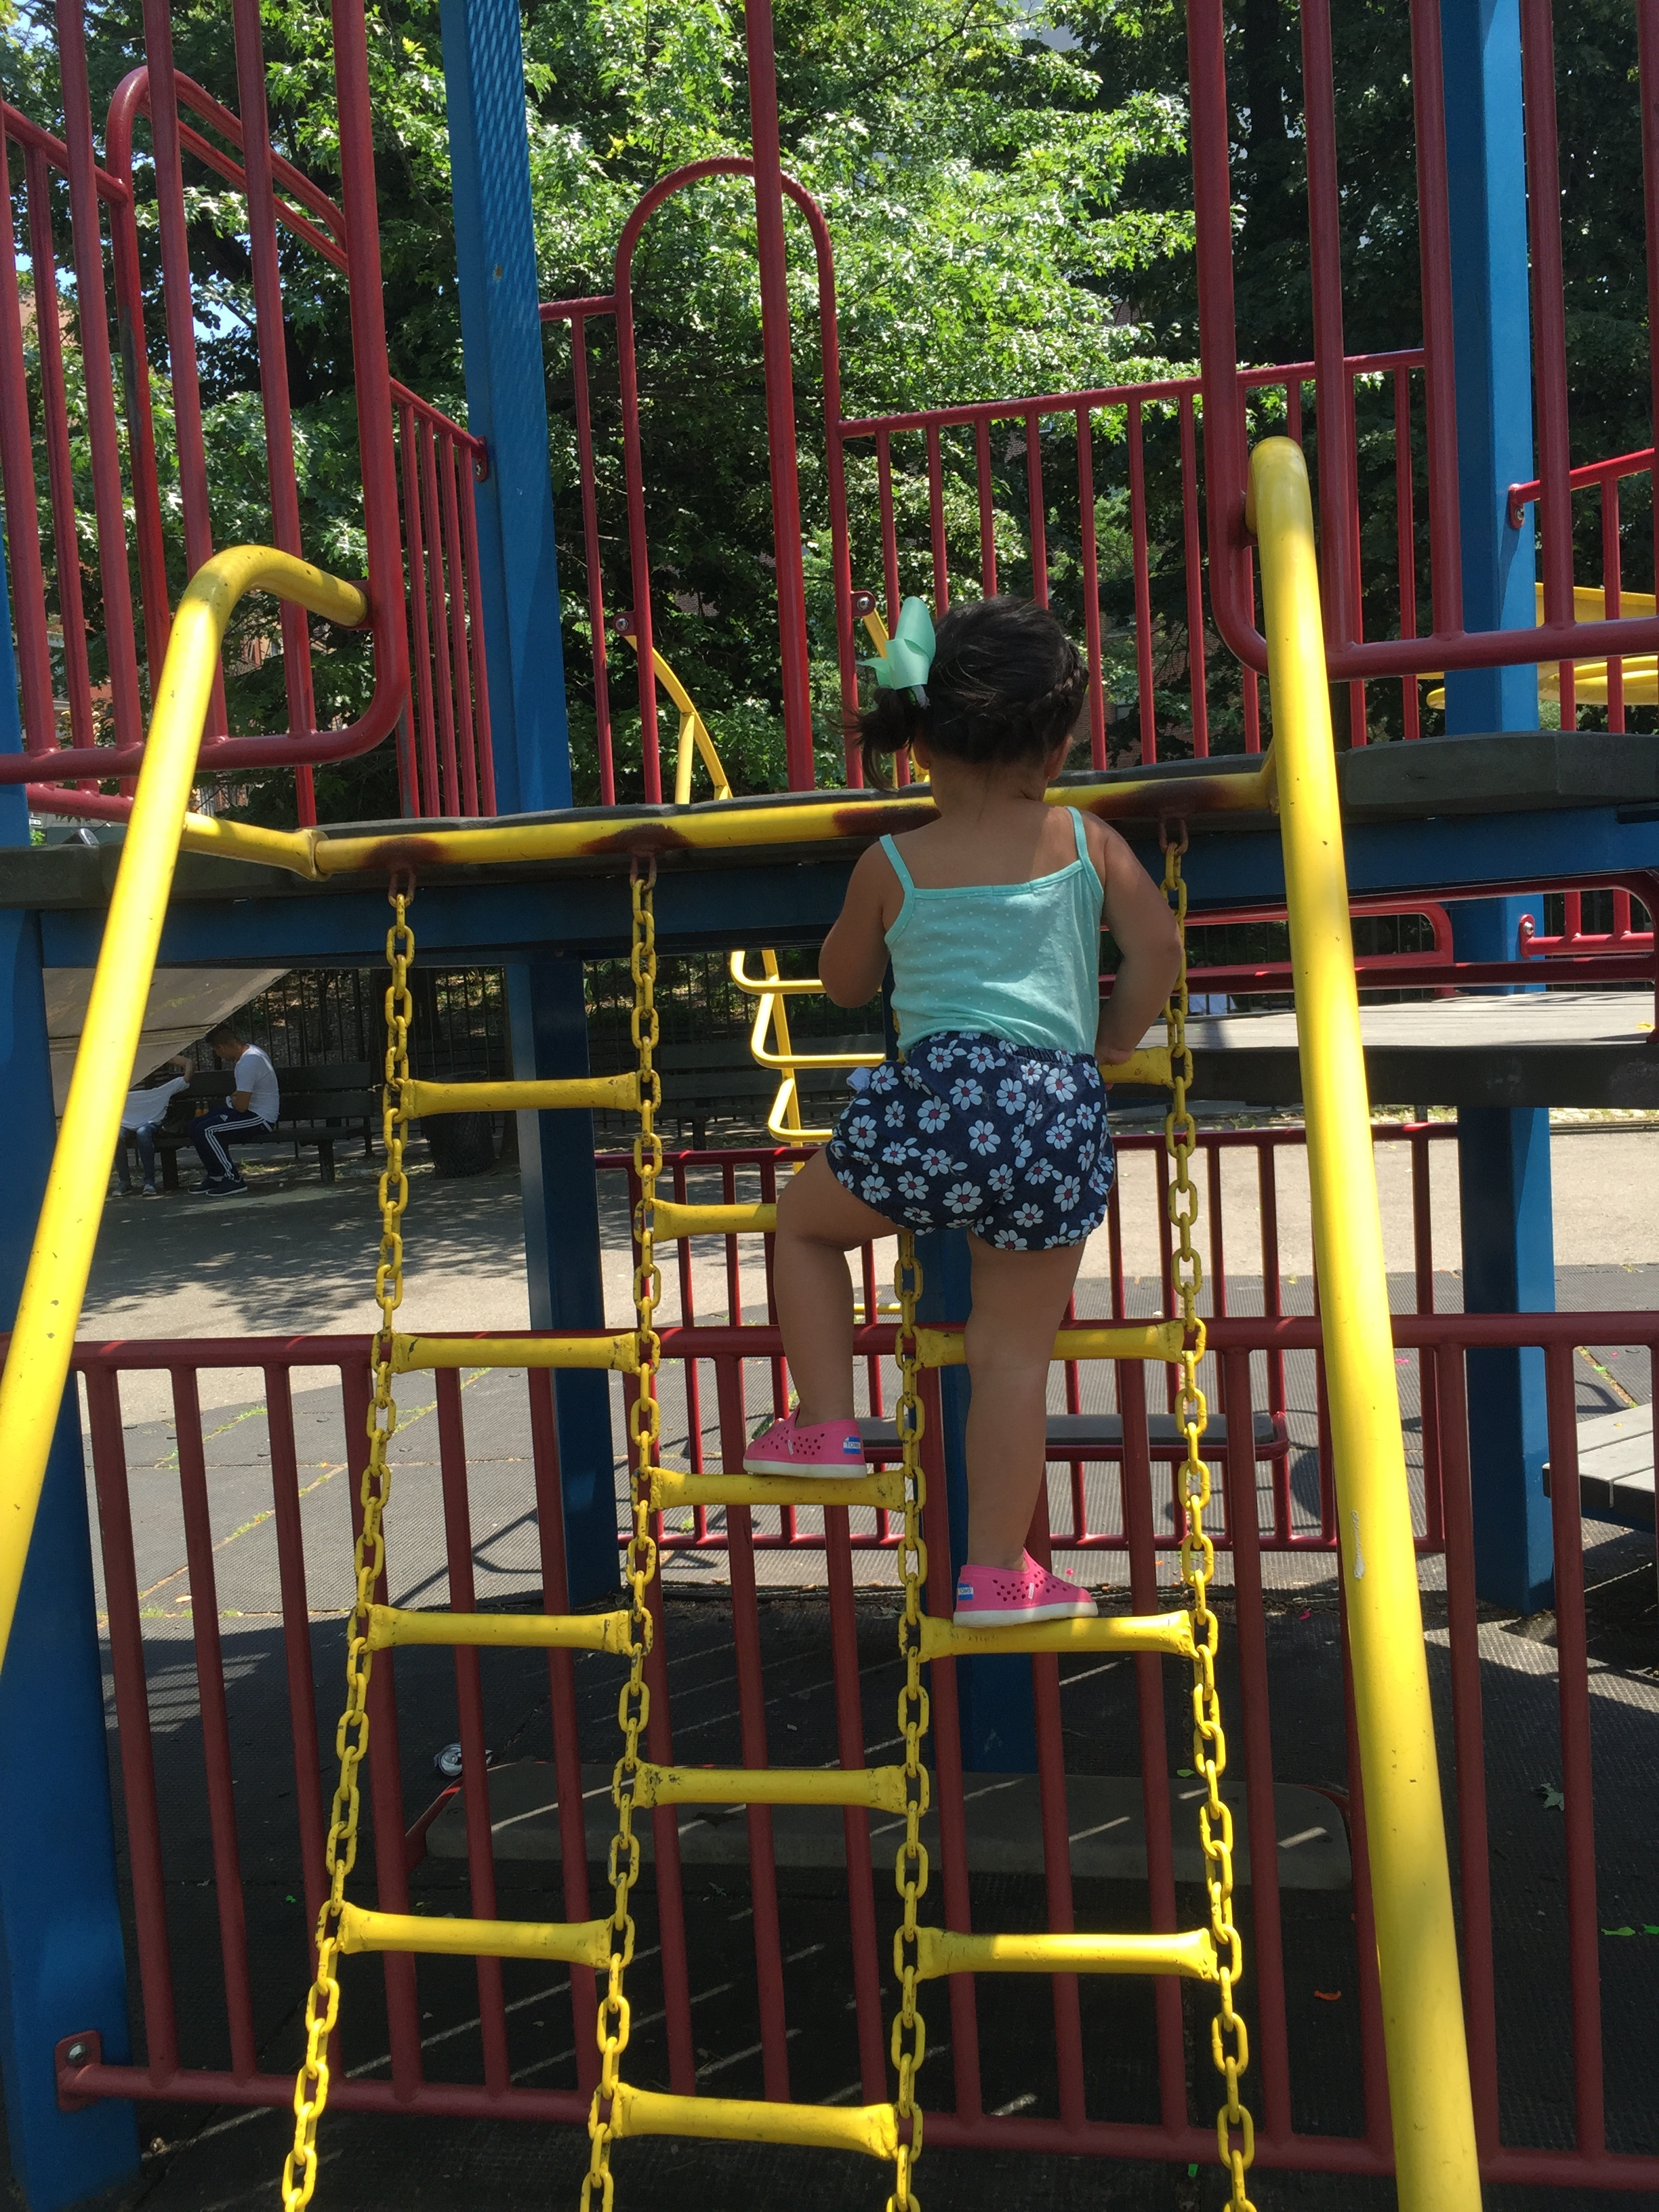 climbing at the playground